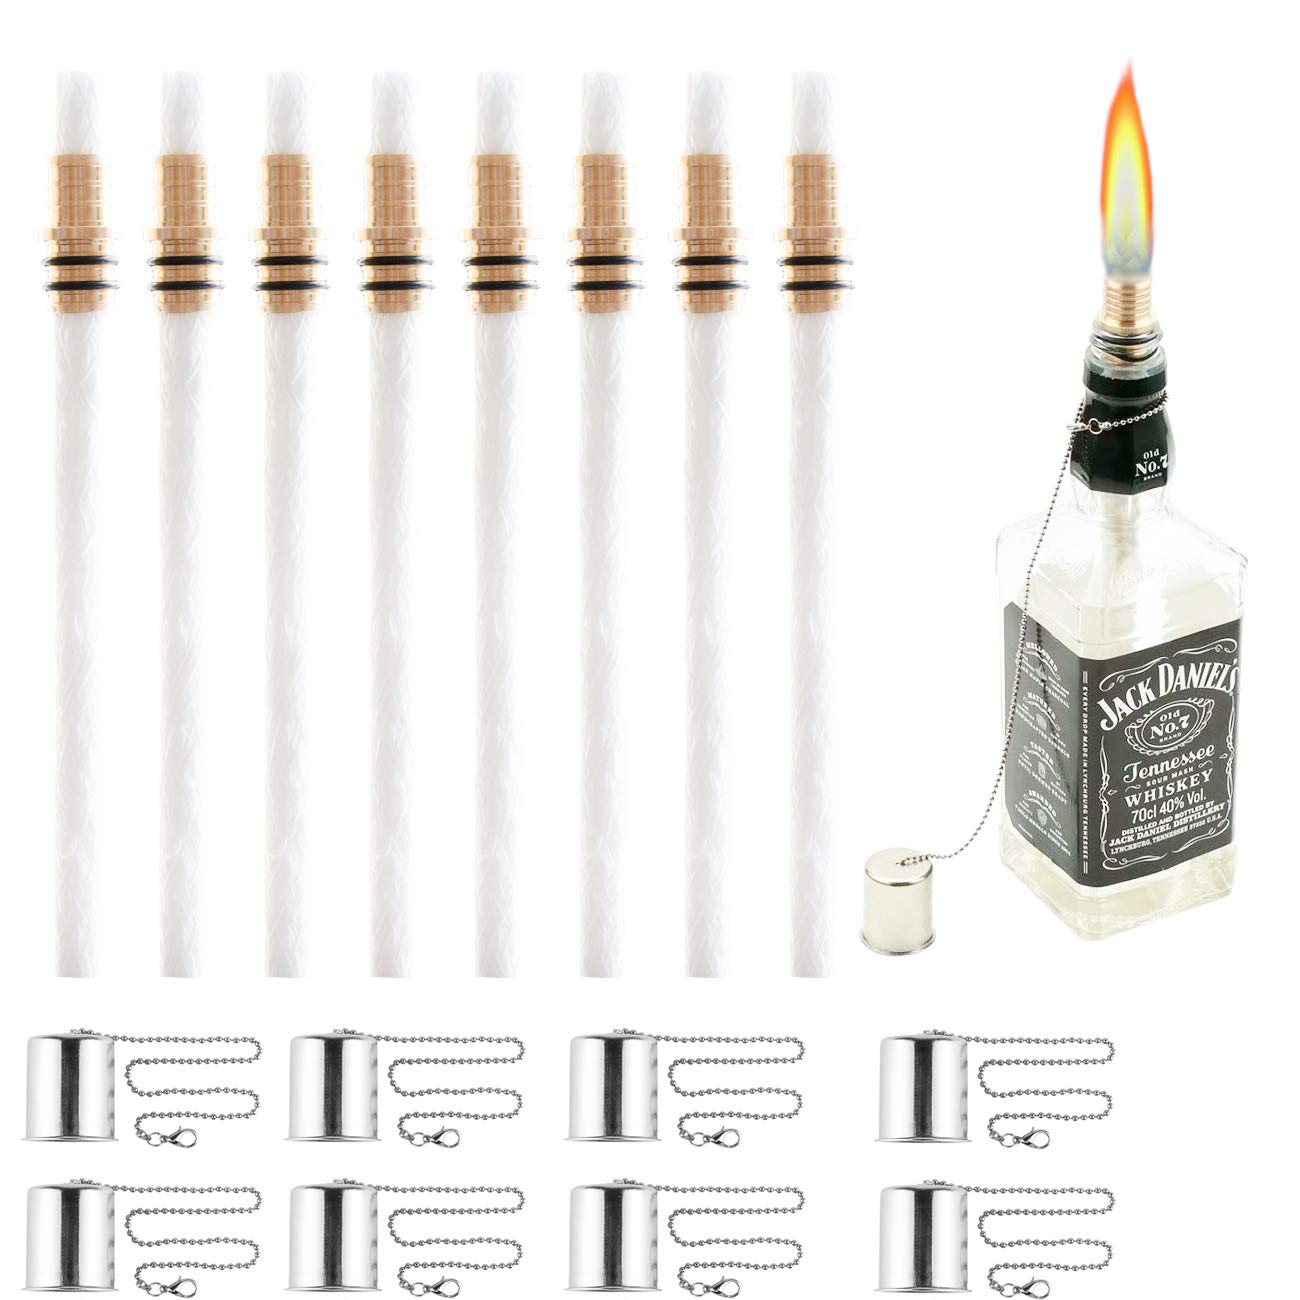 OEXEO Wine Bottle Tiki Wicks,Oil Lamps,Tabletop Torch,Patio Torch,Table Top Torch Lantern Kit for Spring Summer Nights/Outdoors (8PCS Lamp Covers)